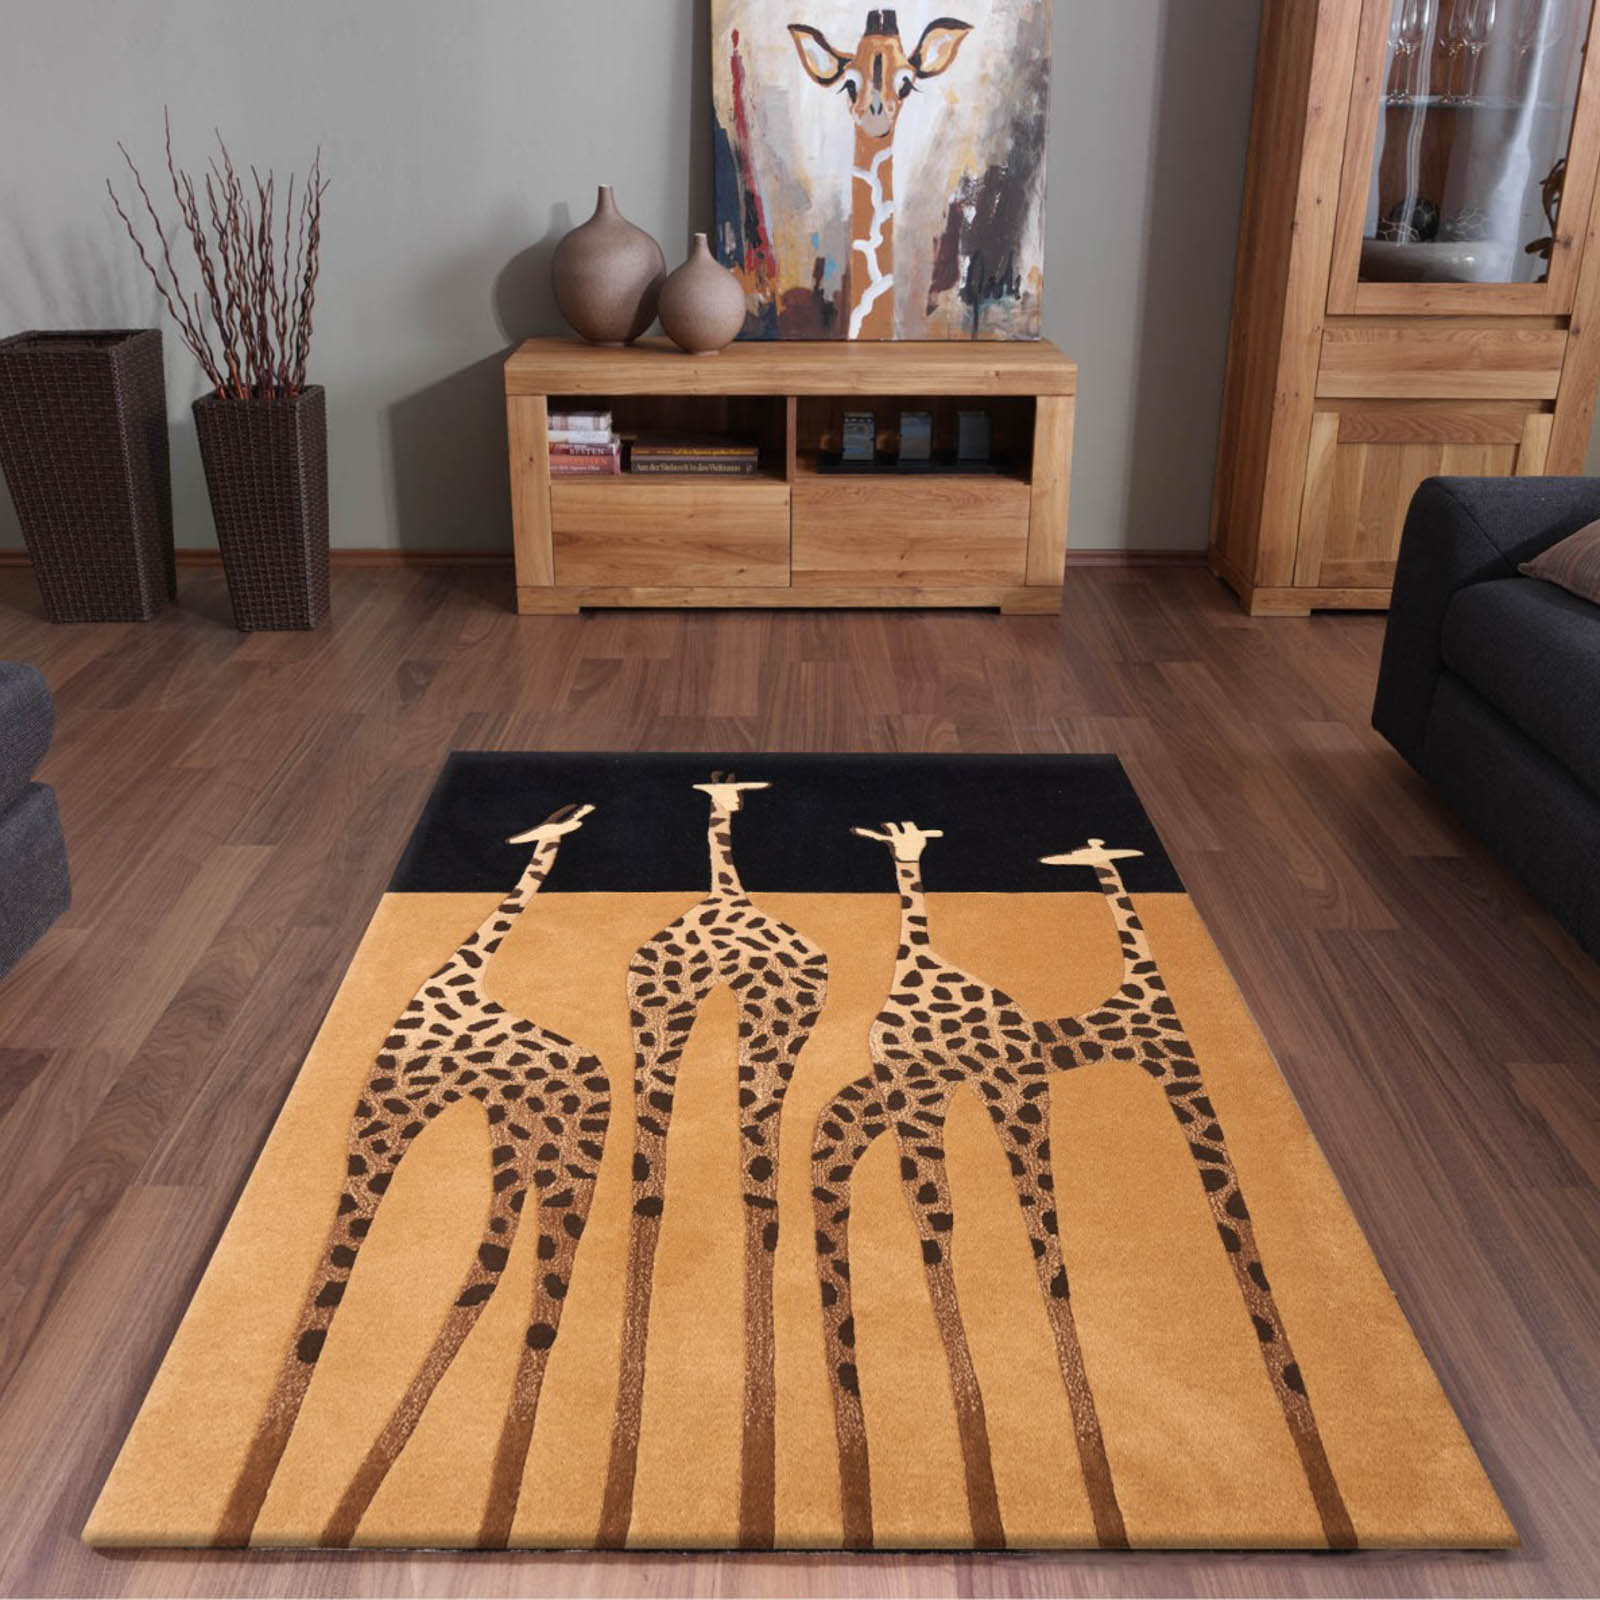 Kalahari Giraffe Rugs in Gold and Black